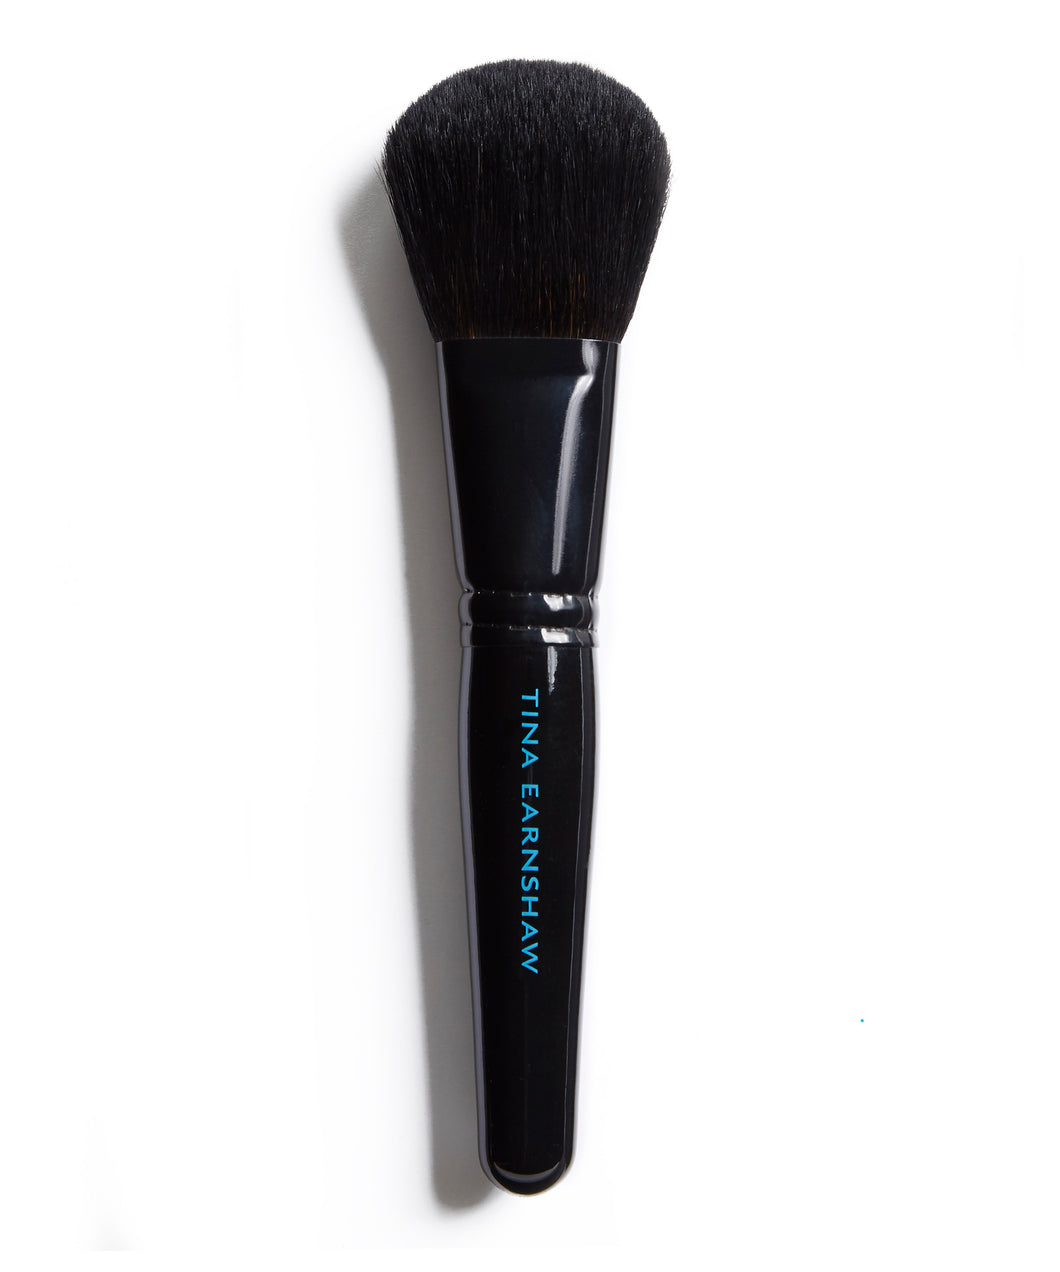 Powder Brush - No1